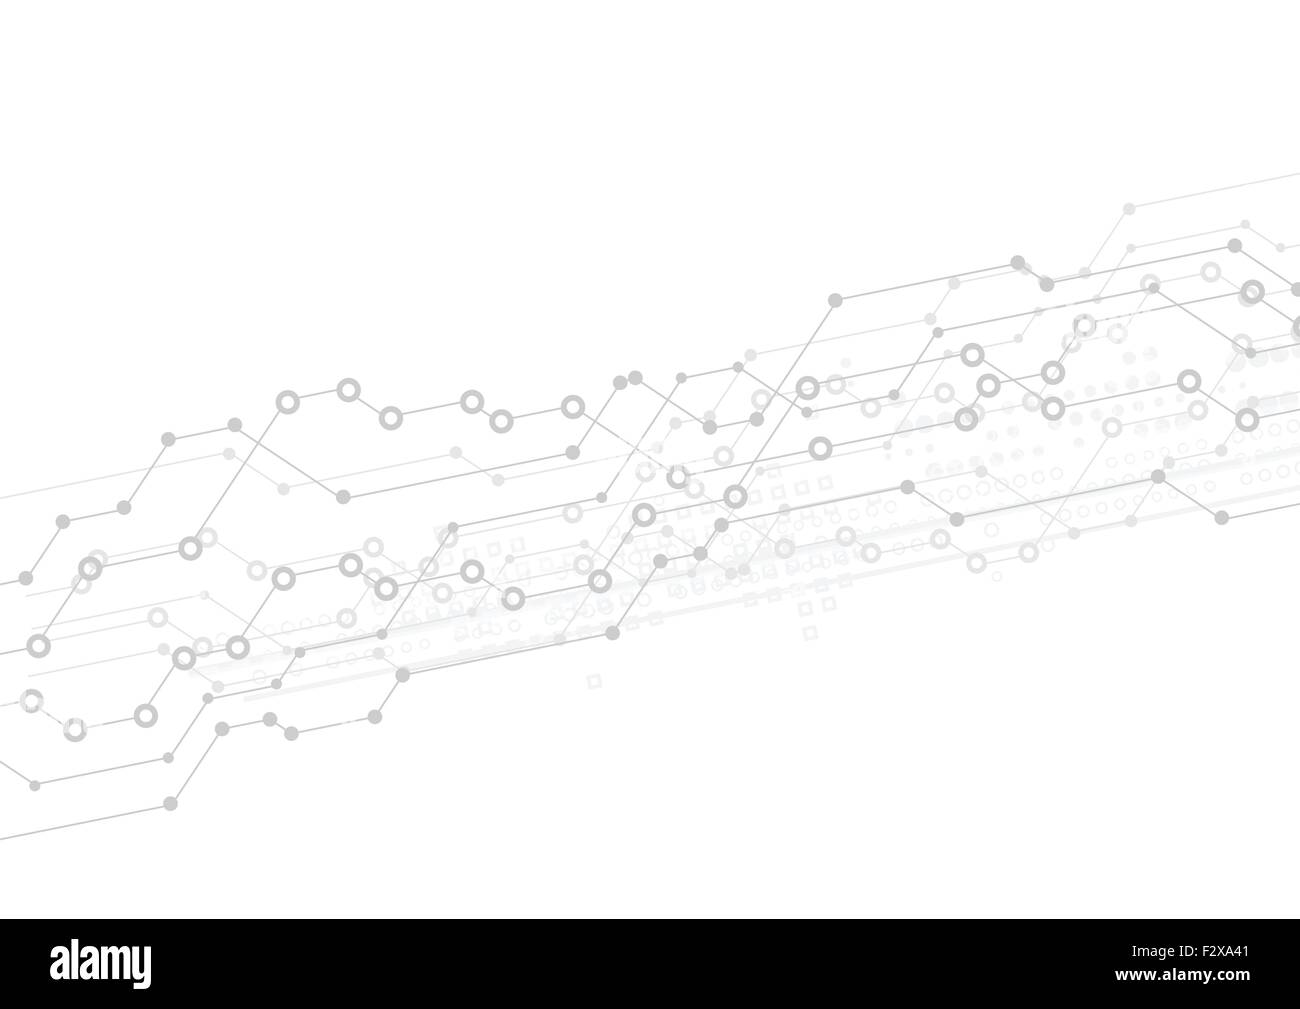 Abstract Light Technology Background With Circuit Board Design Stock Vector Grey Illustration